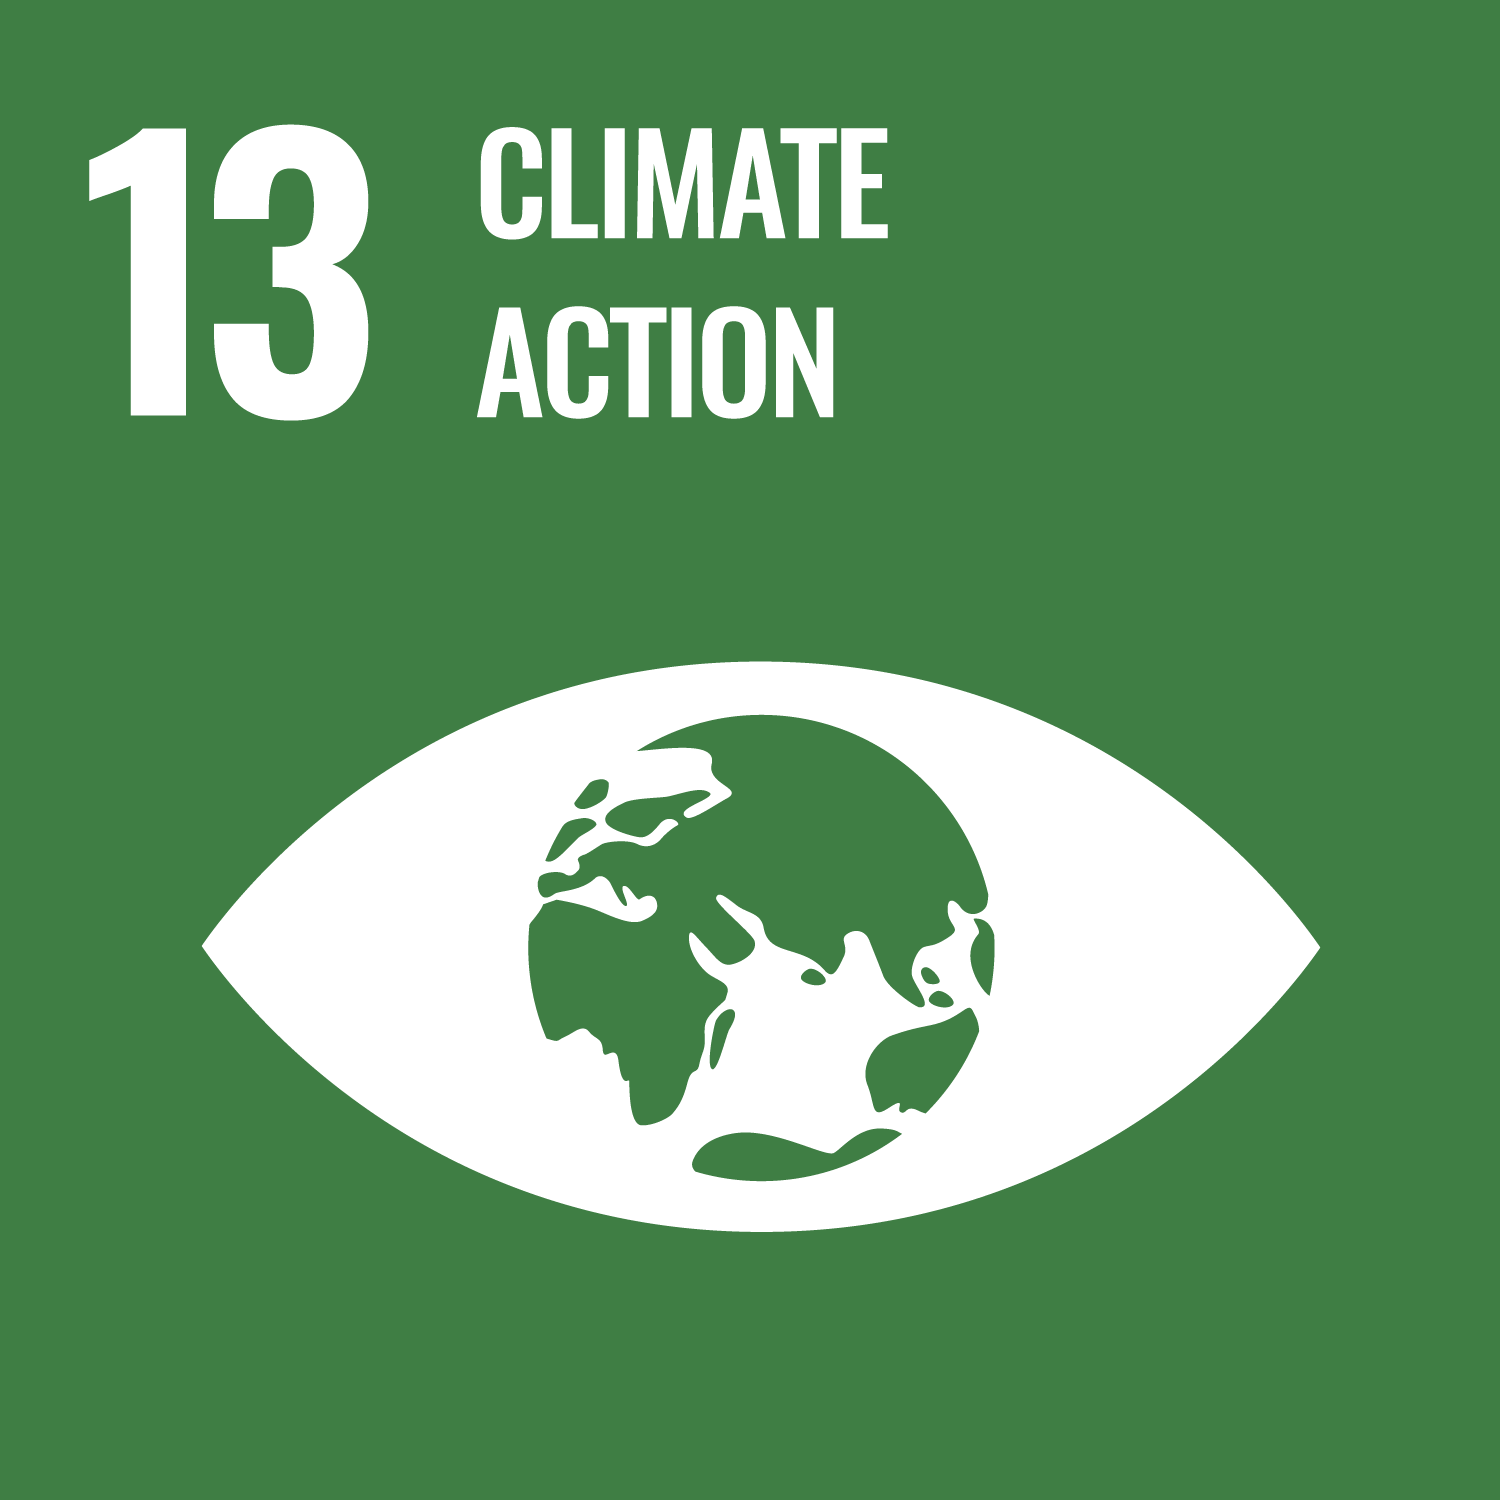 UN sustainable development goal number 13 Climate action. Link to goal number 13.